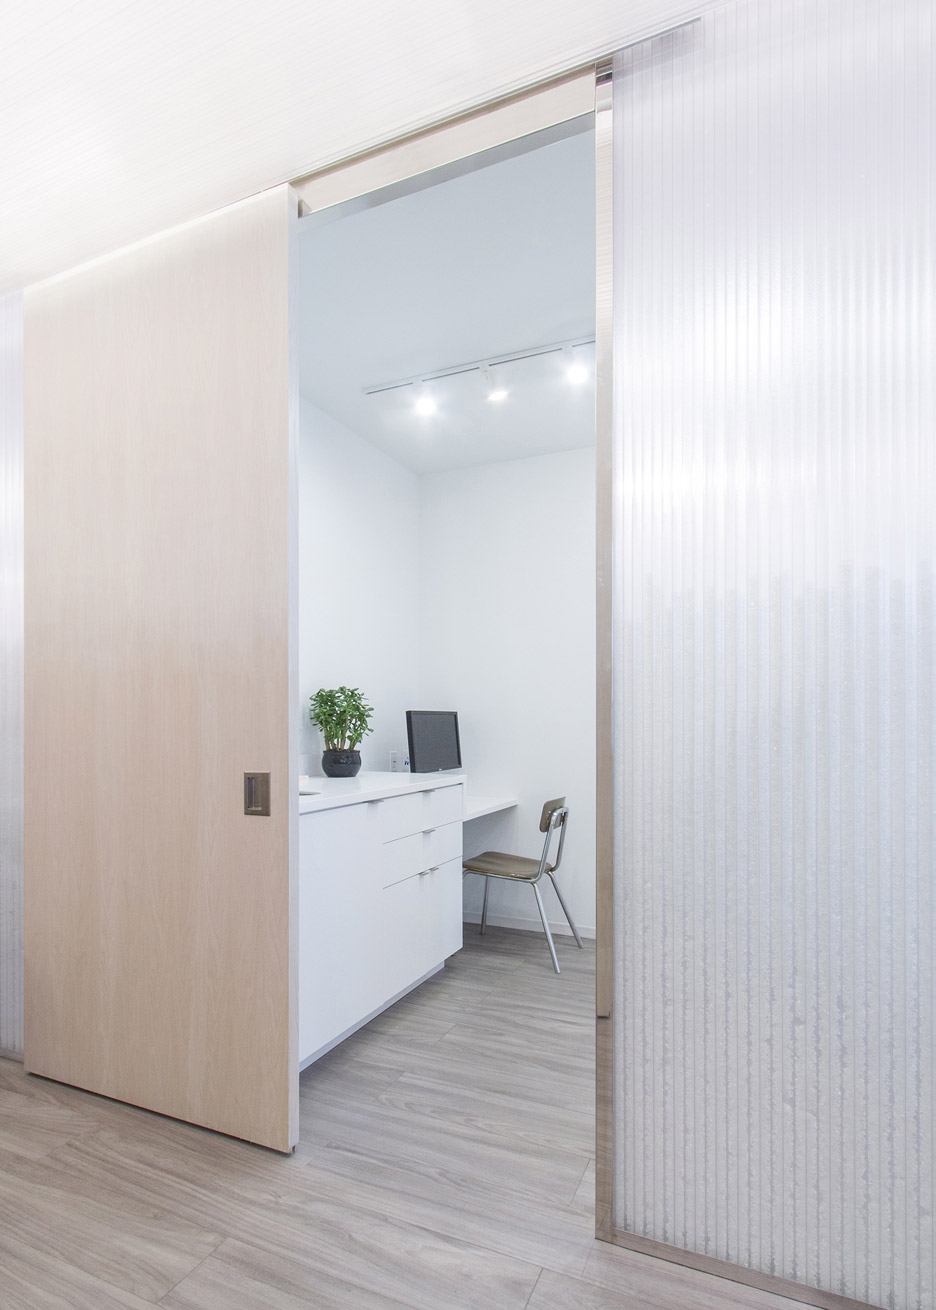 1.4 private medical clinic by UUfie in Ontario, Canada